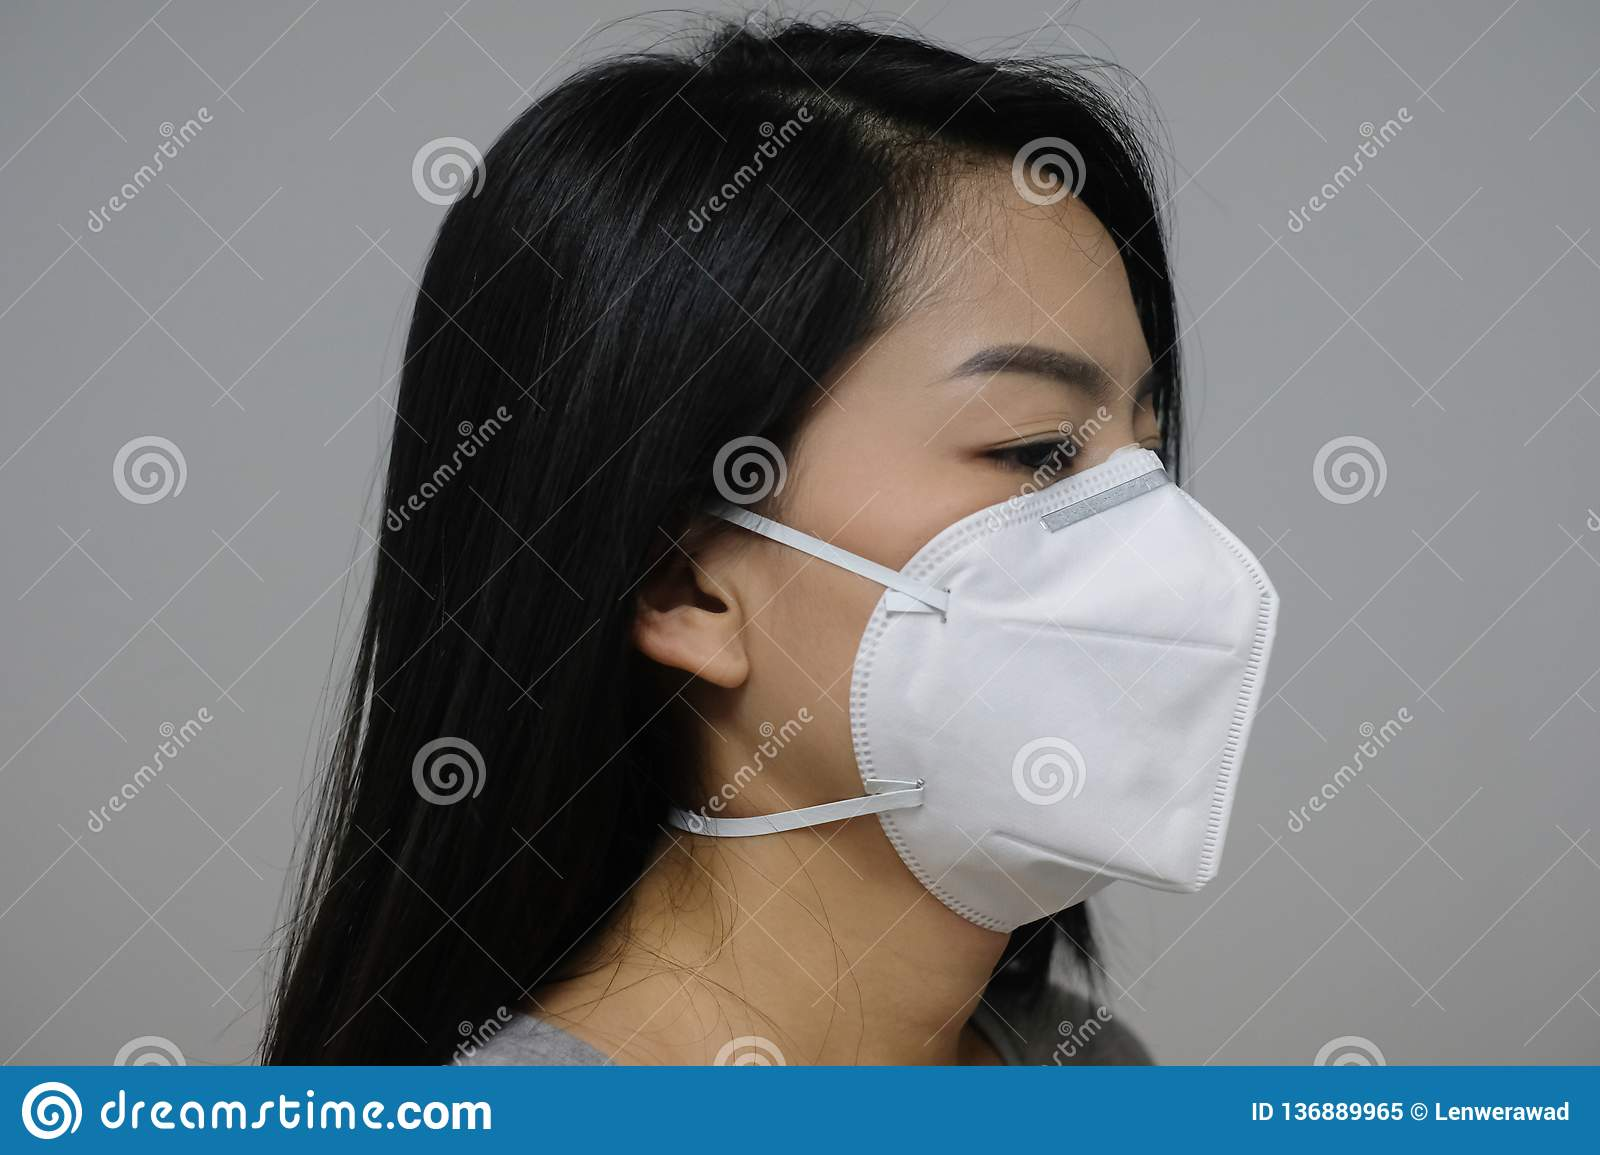 Woman Mask Of Wearing Because Pollution The Face Air In N95